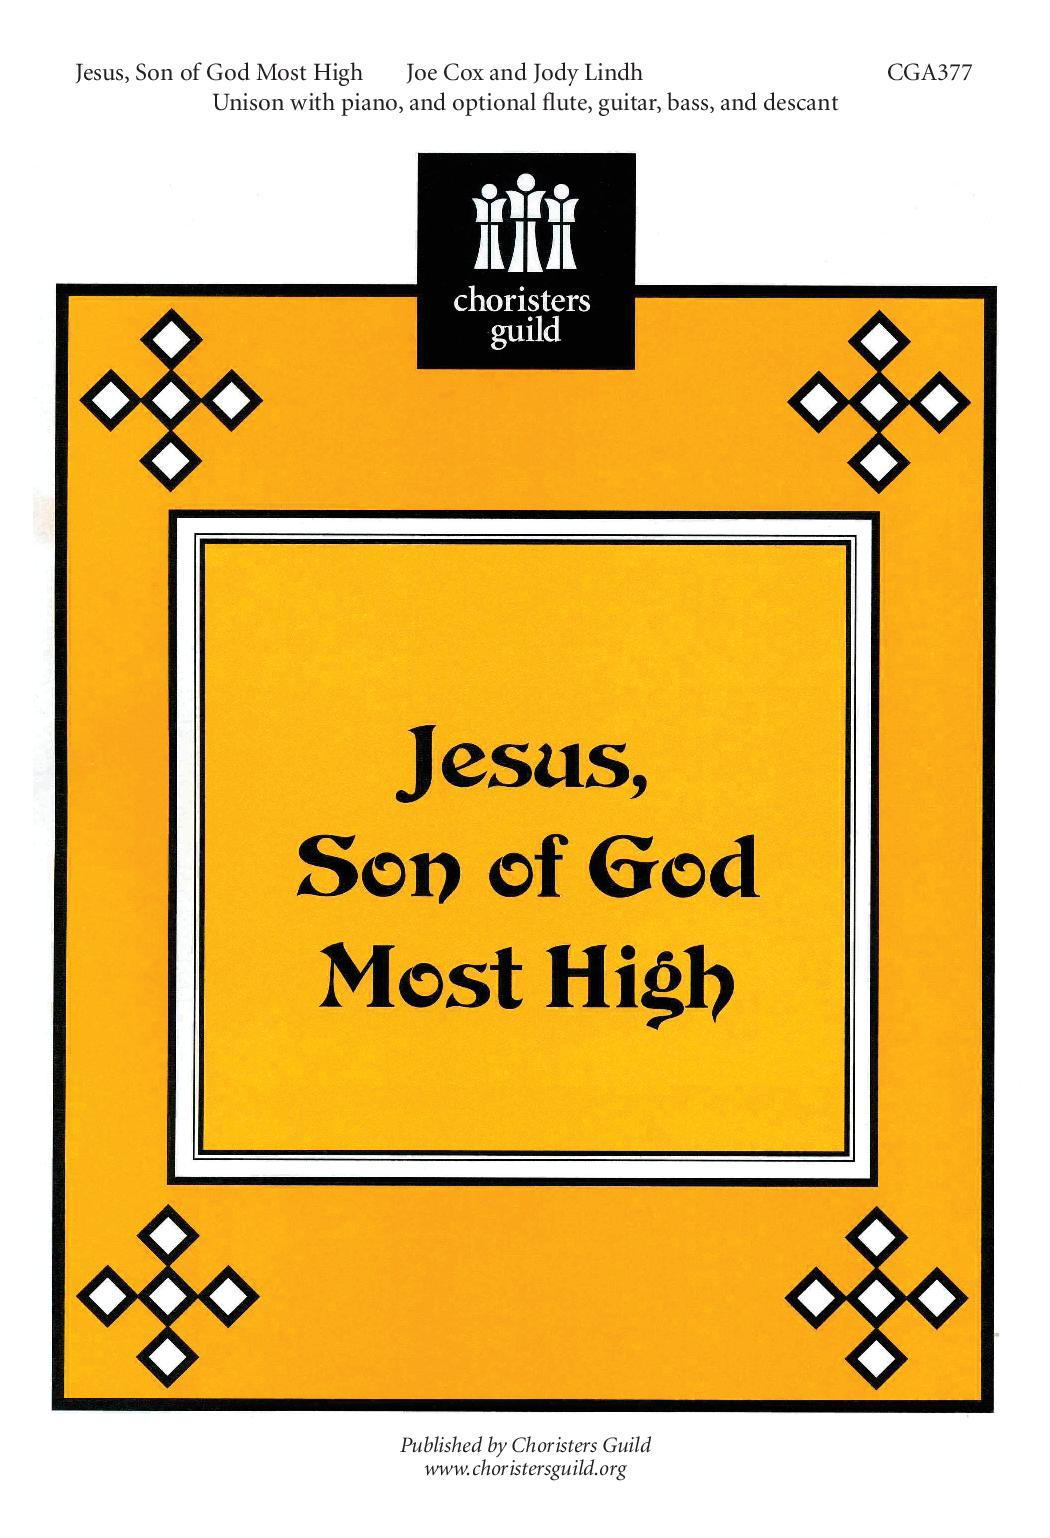 Jesus, Son of God Most High